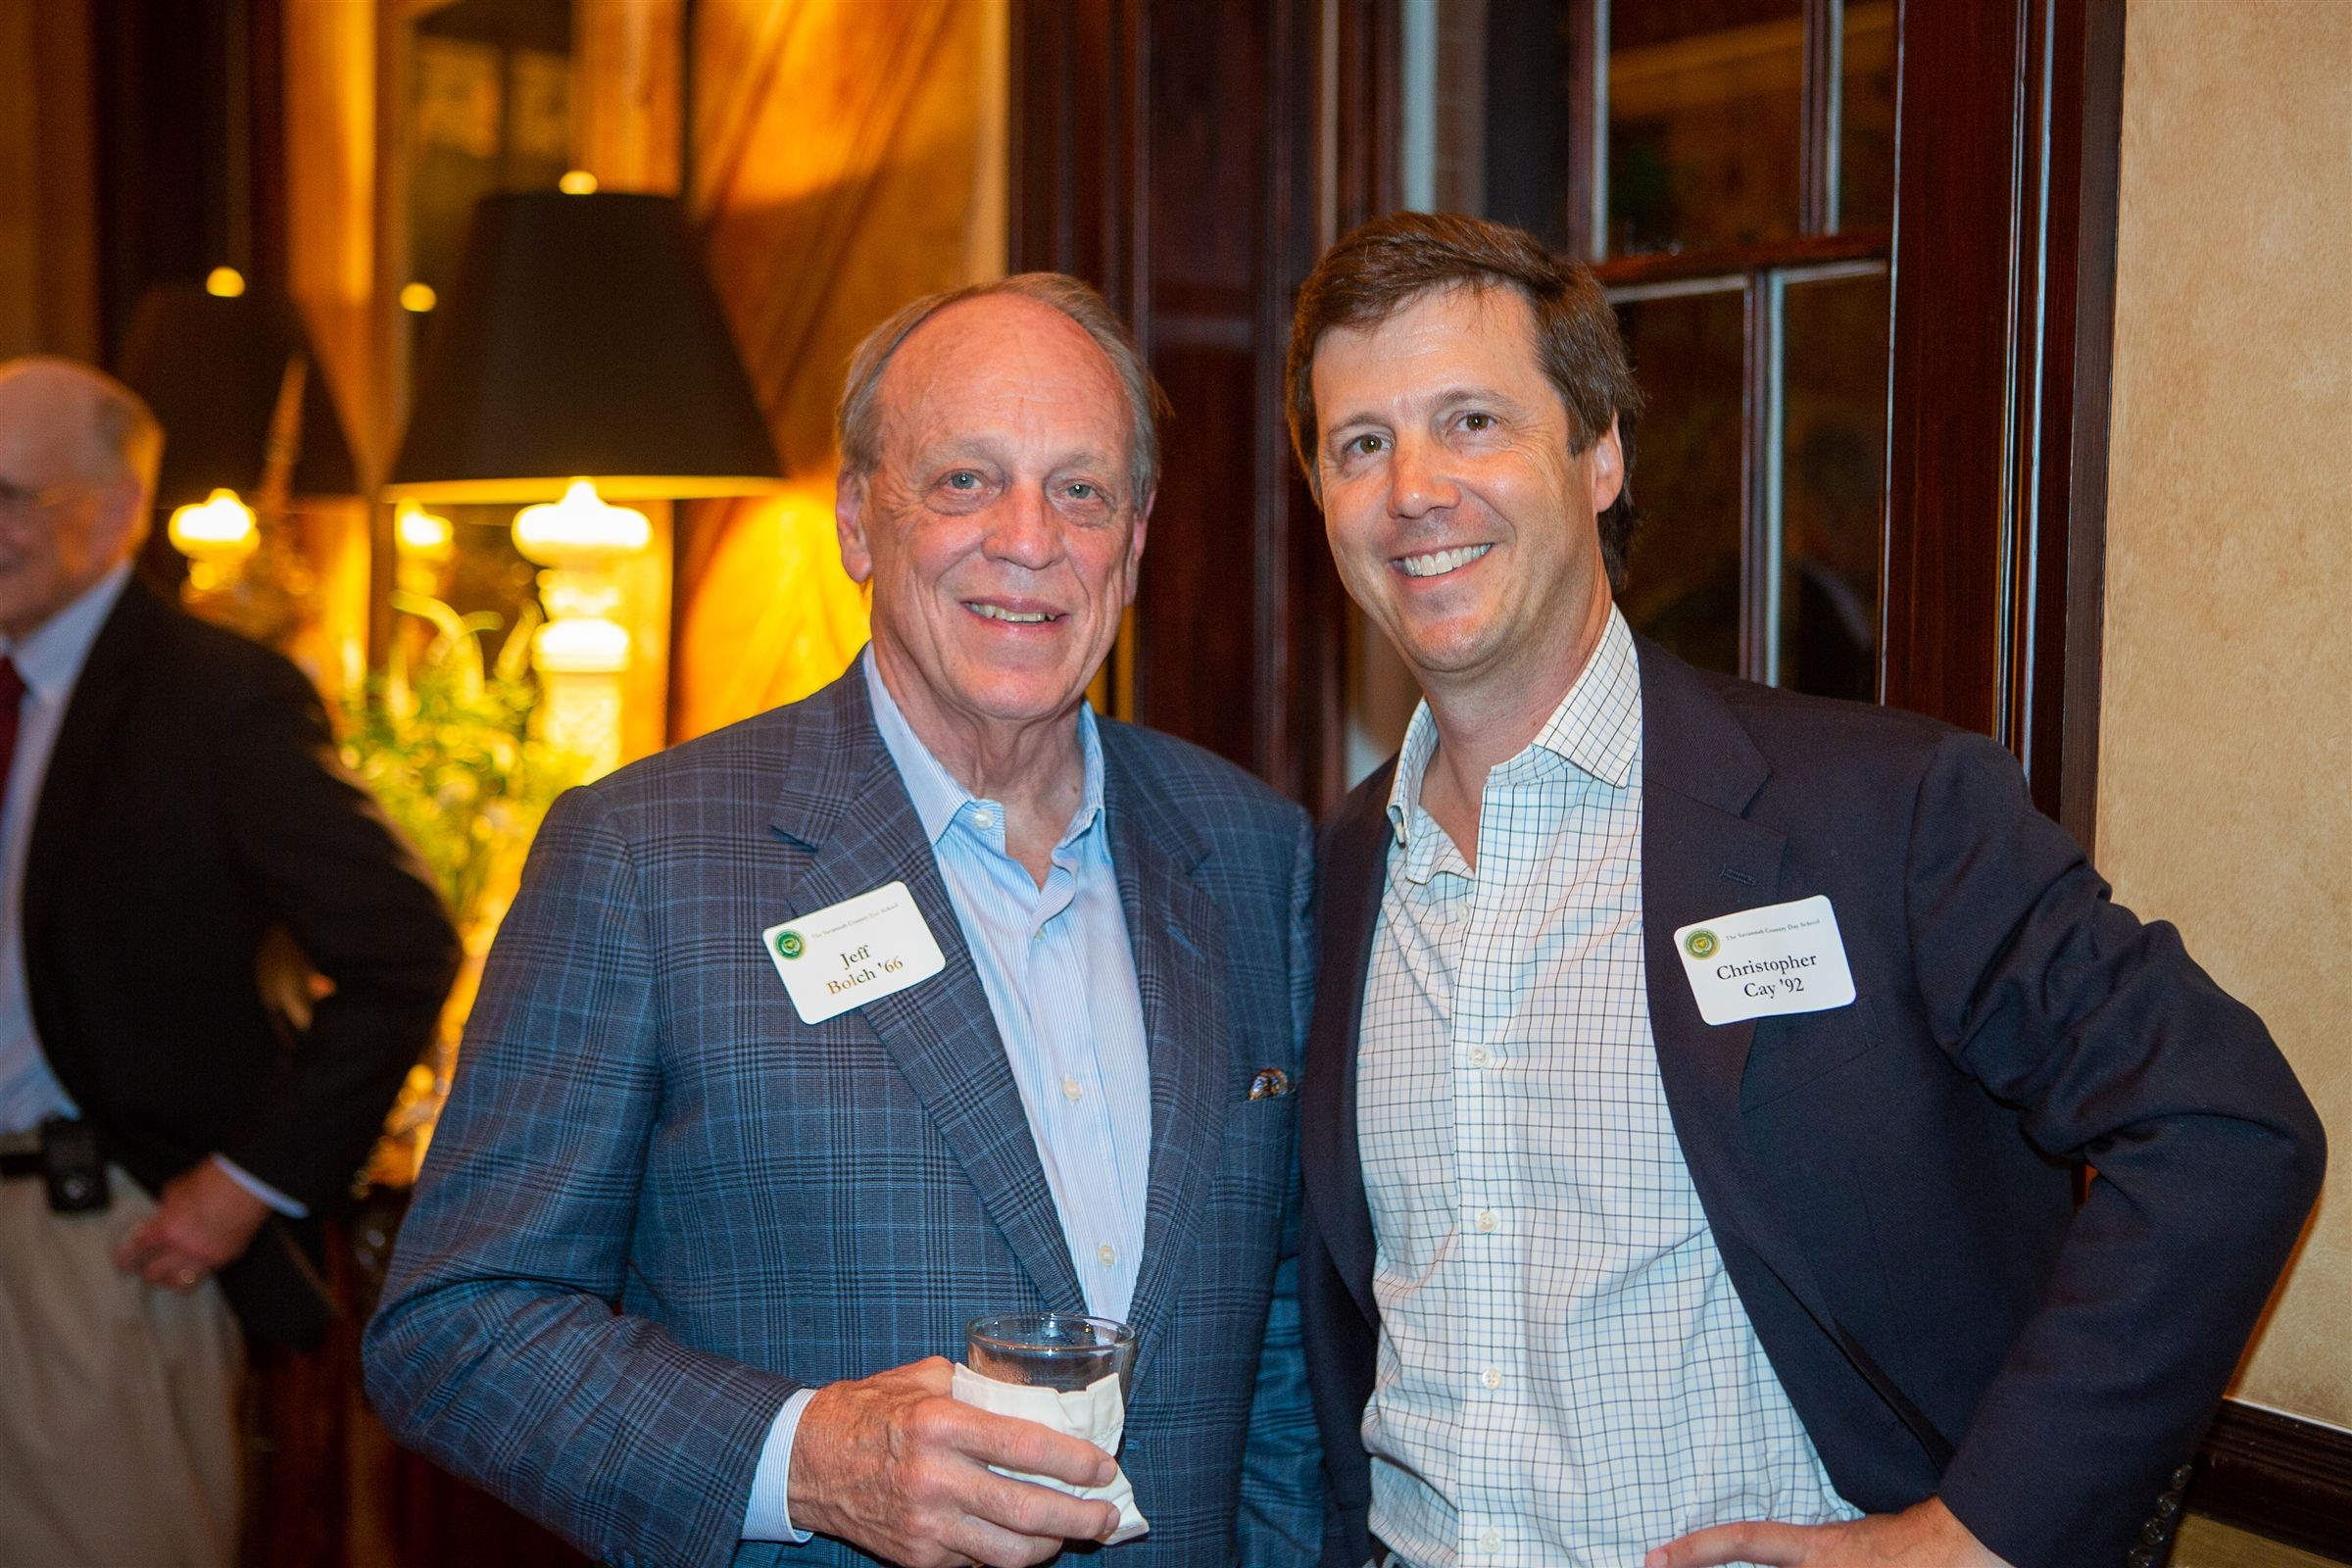 Dr. Jeff Bolch '66 & Christopher Cay '92 at the 2019 Green & Gold Dinner